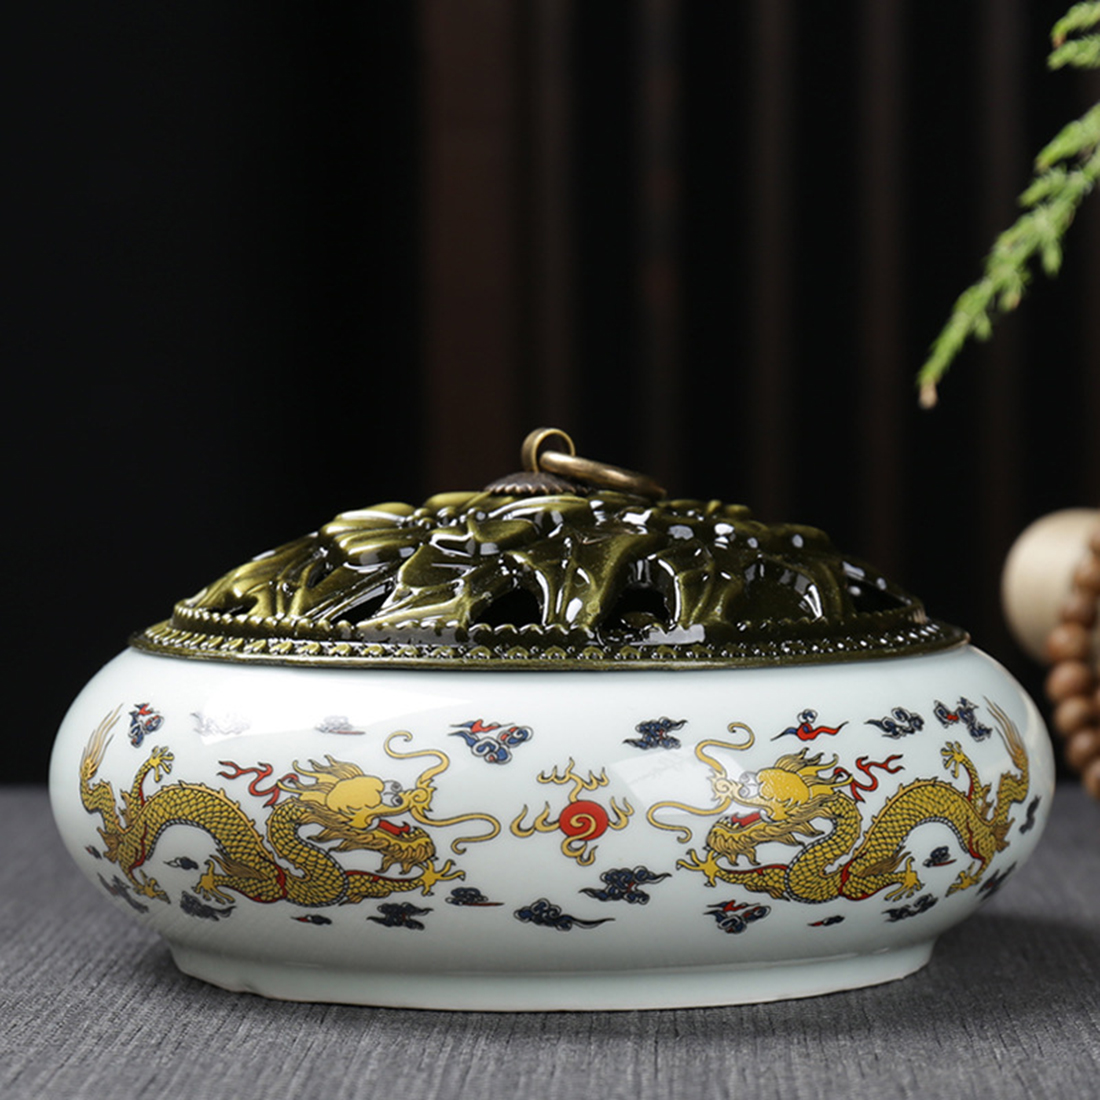 Ceramic Backflow Incense Burner Censer Chinese Style Incense Coil Incense Holder Creative Home Office Decor Incienso Quemador